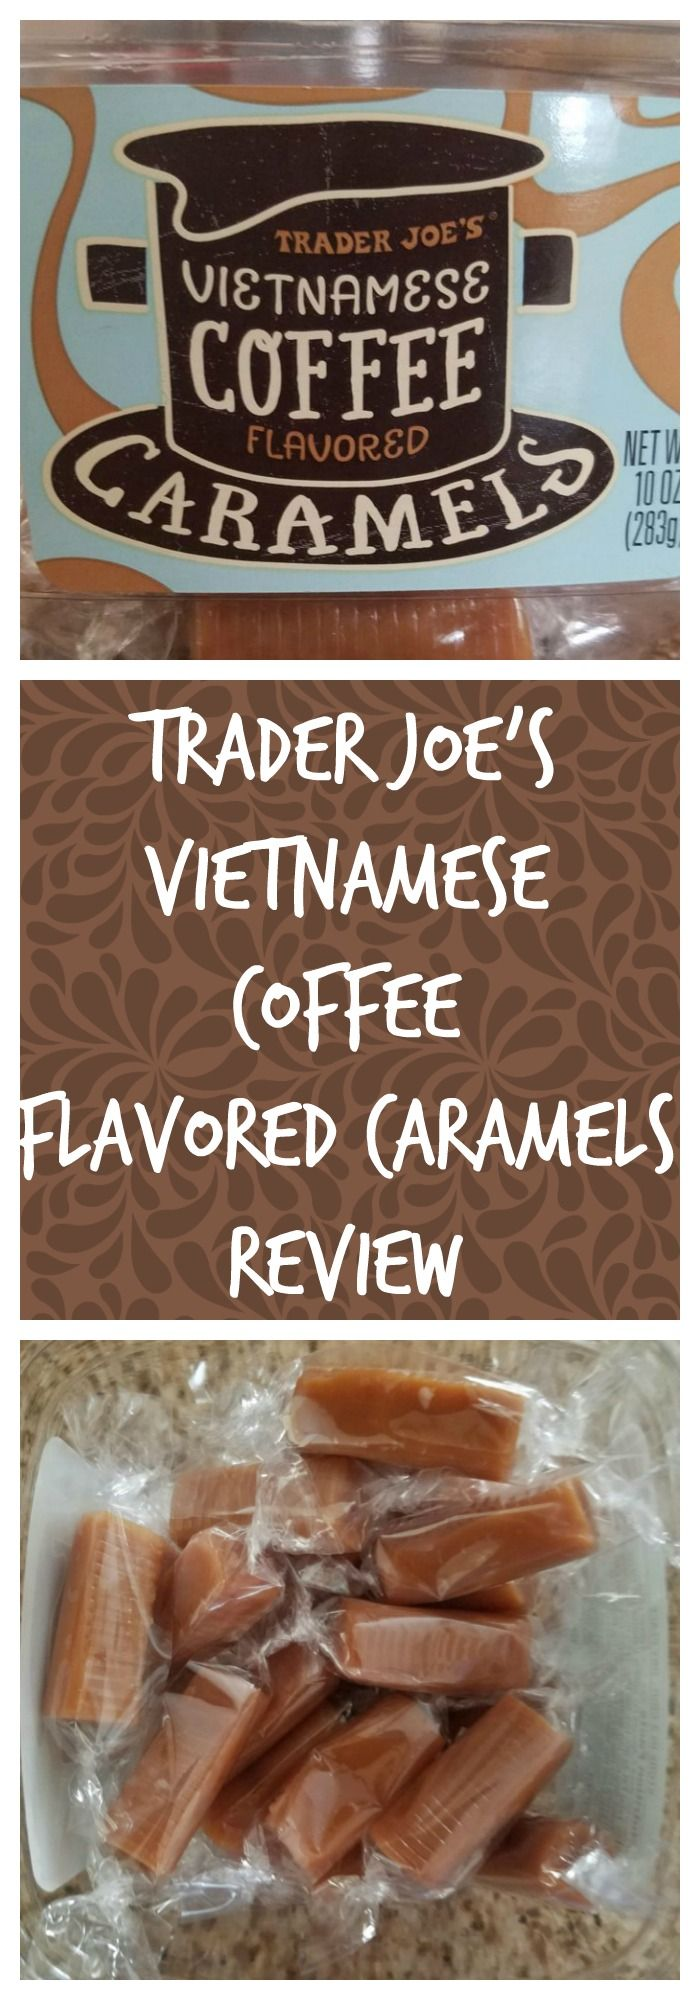 Trader Joe's Vietnamese Coffee Flavored Caramels are a new